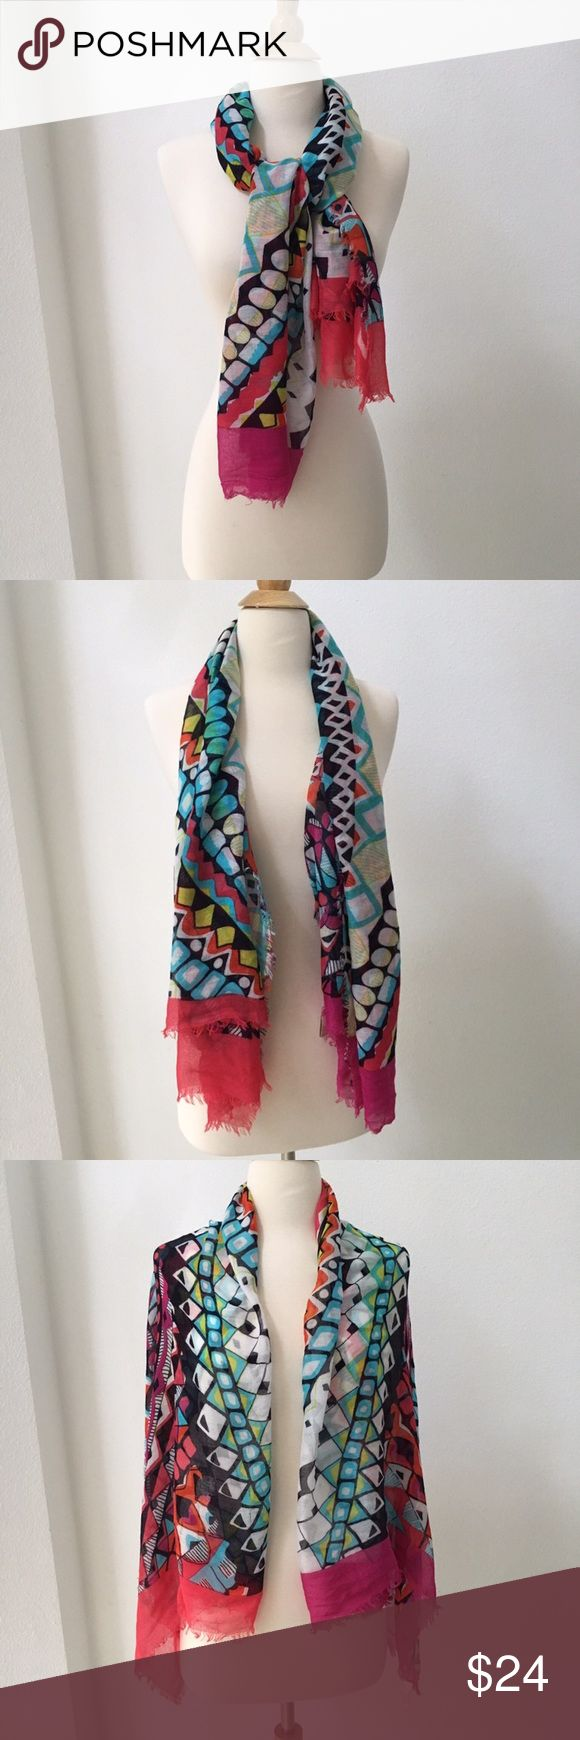 New Multi-colored Scarf from Nordstrom New, Never been used. Scarf purchased from Nordstrom department store in Hawaii. Can be worn in many creative ways. Accessories Scarves & Wraps